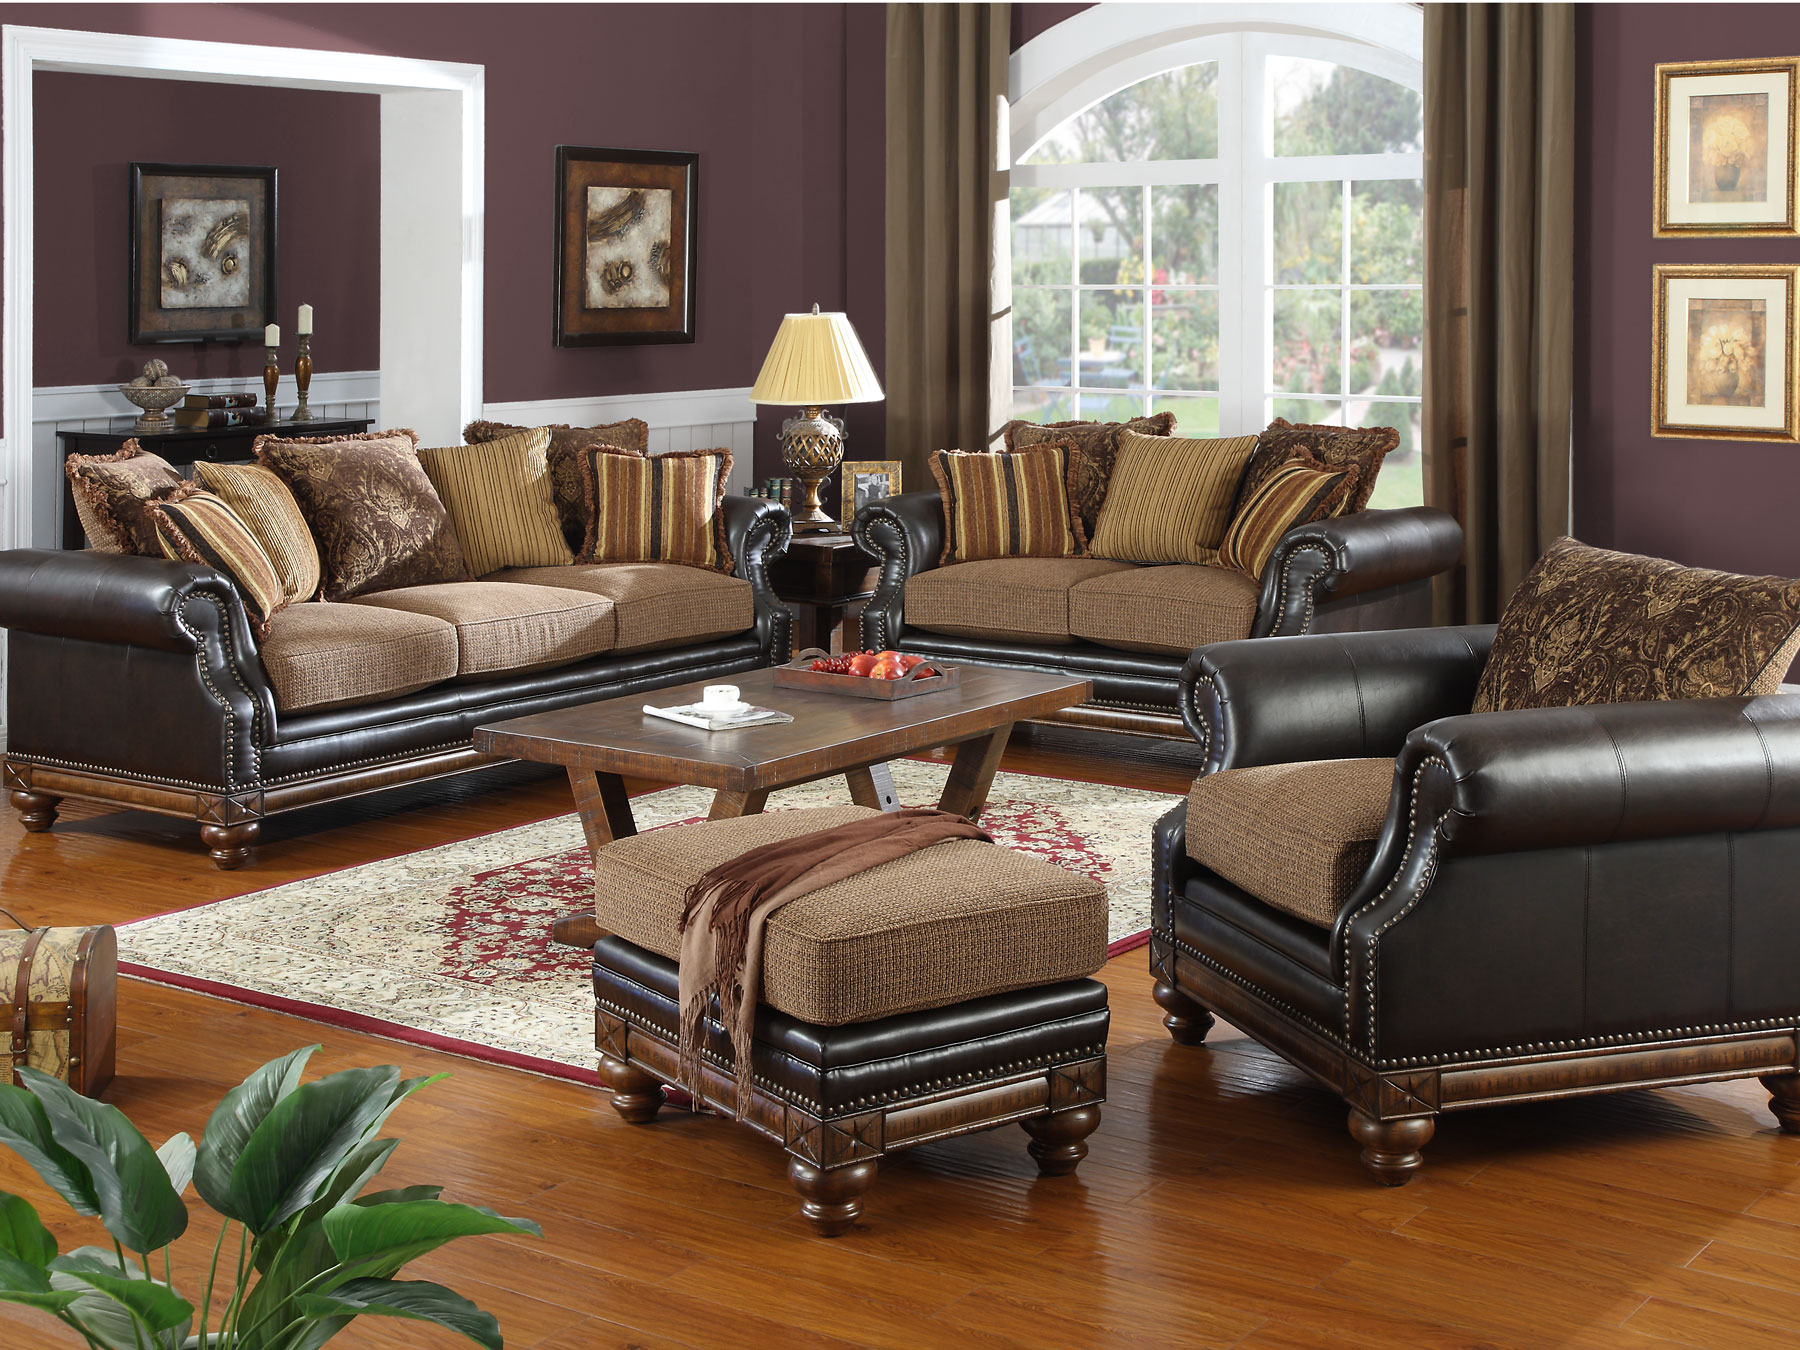 fancy living room tables wall candle holders 25 facts to know about ashley furniture sets hawk haven